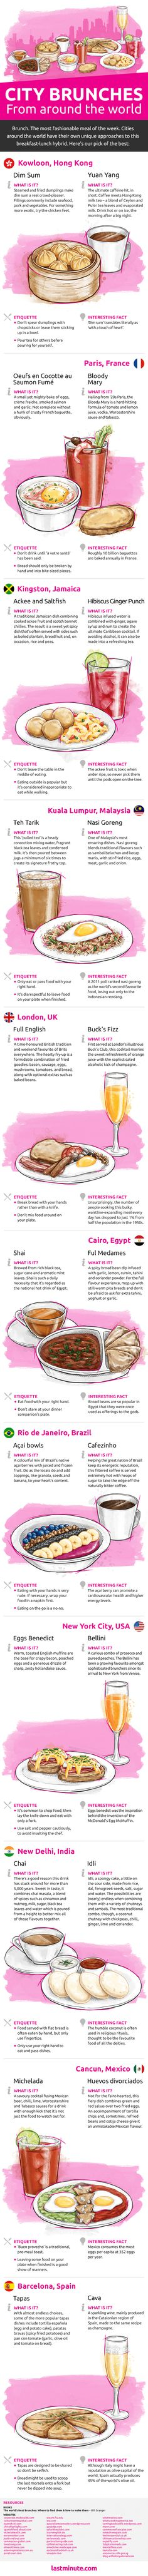 Different Cities Around The World And Their Brunches - Infographic